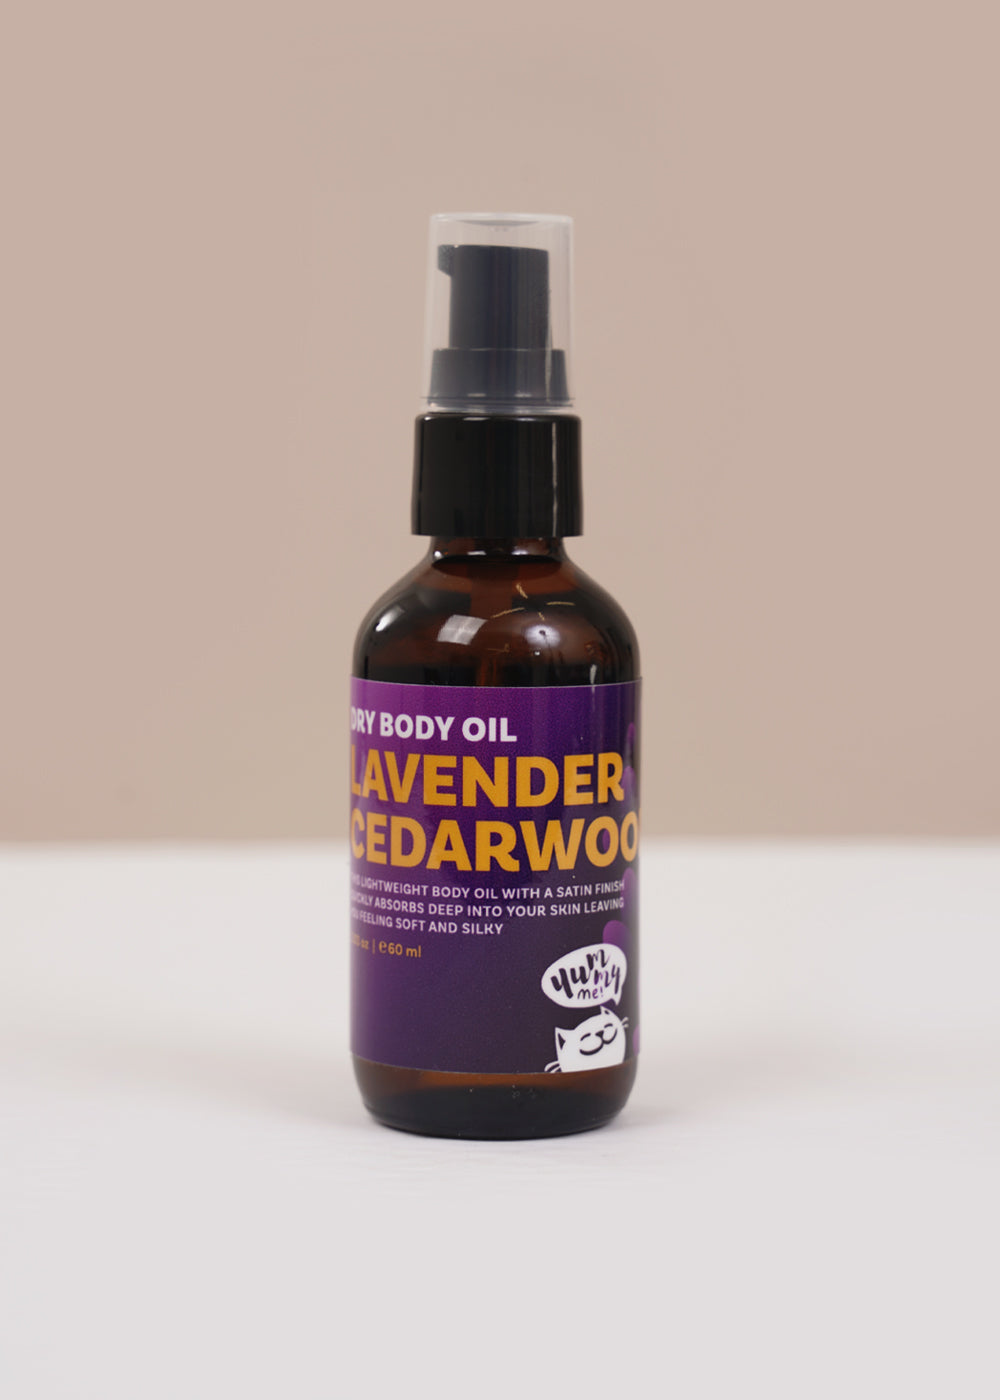 Lavender Cedarwood Dry Body Oil